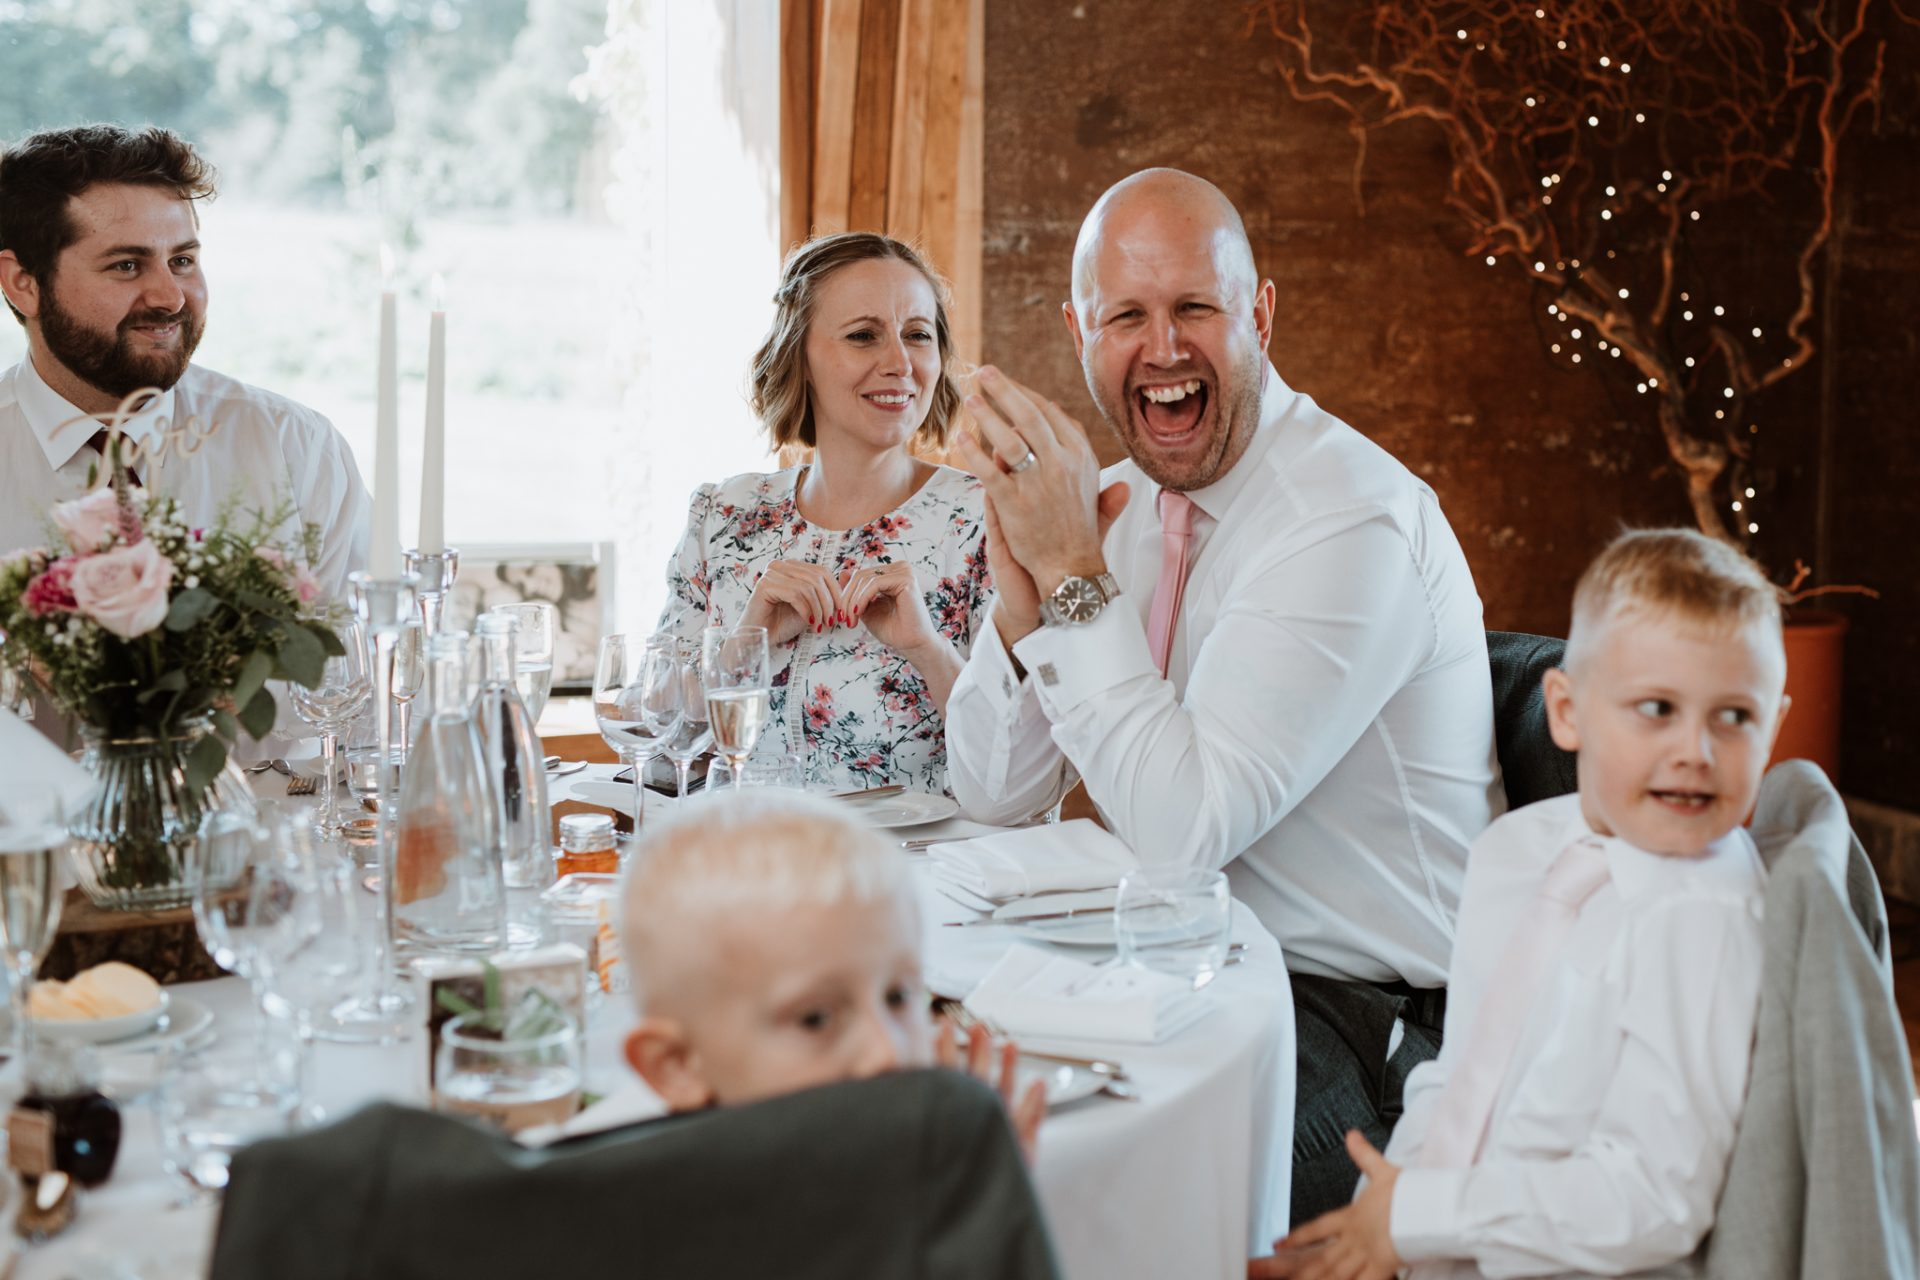 guests clapping